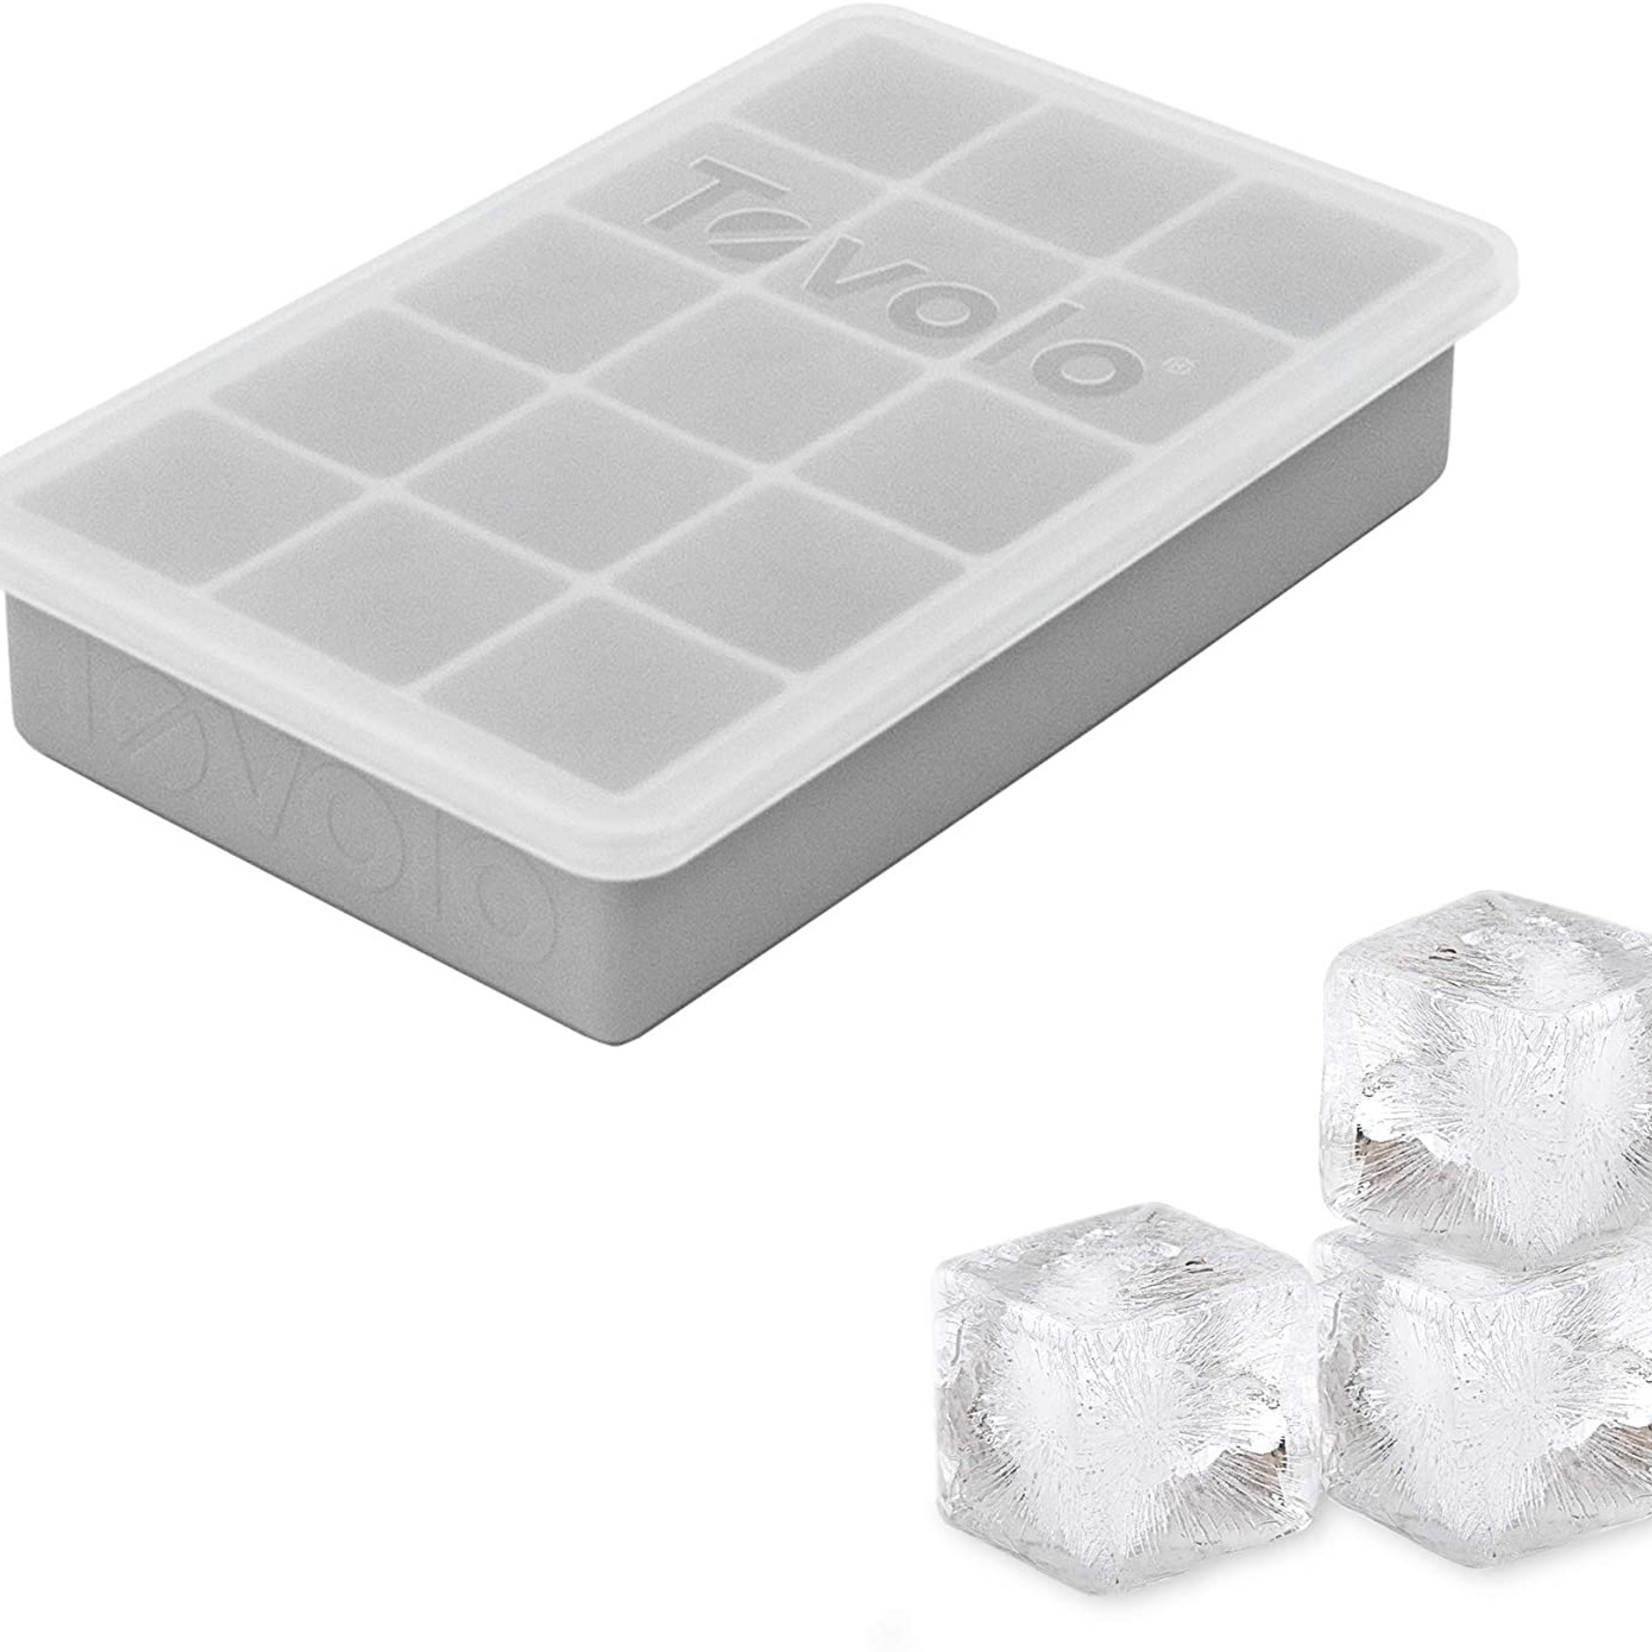 Tovolo Perfect Cube Ice Tray with Lid Oyster Grey